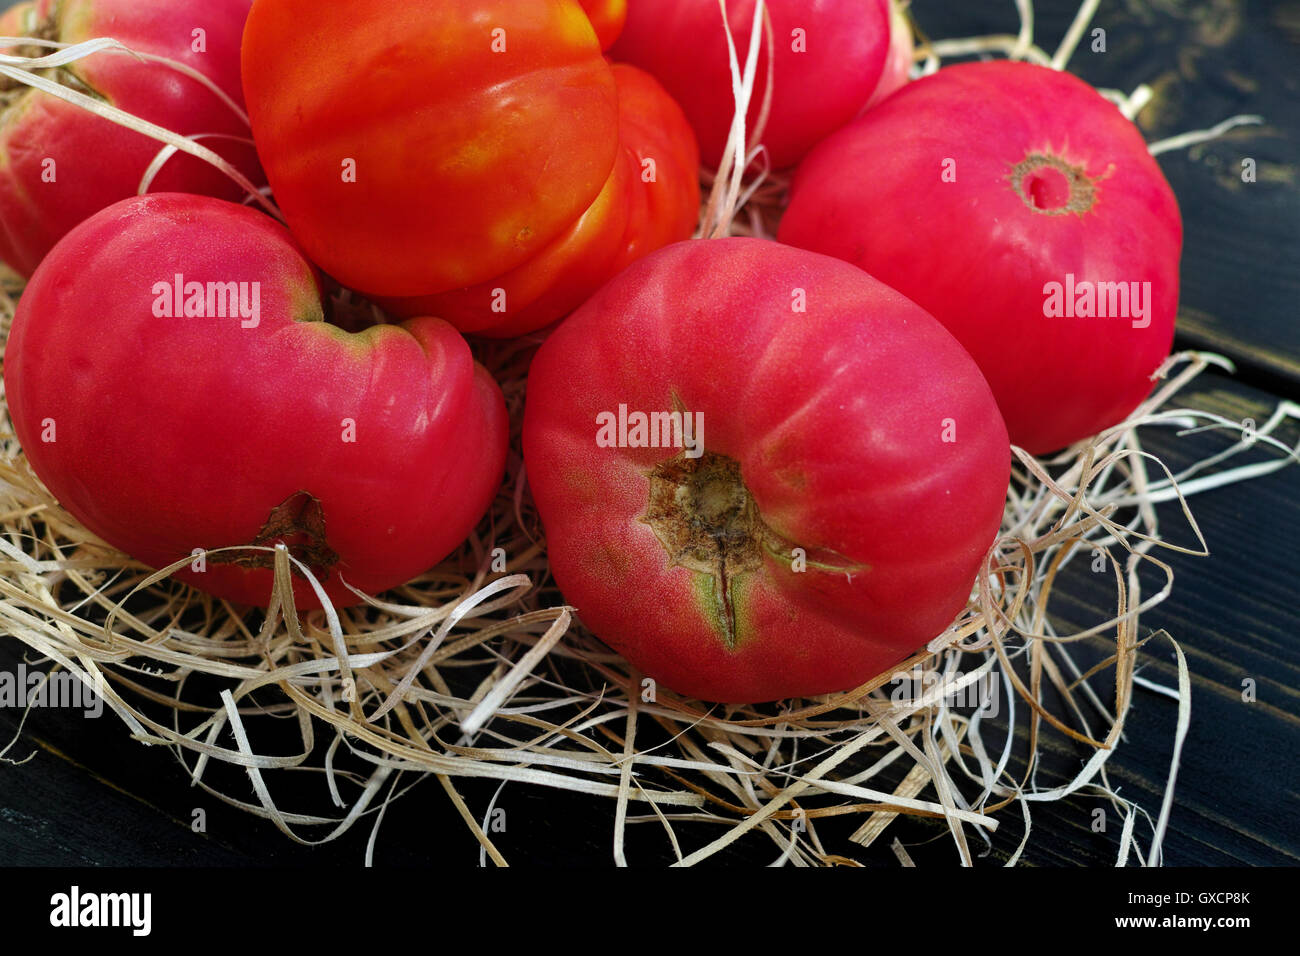 Big pink organic french tomatoes from own garden on black wooden background - Stock Image